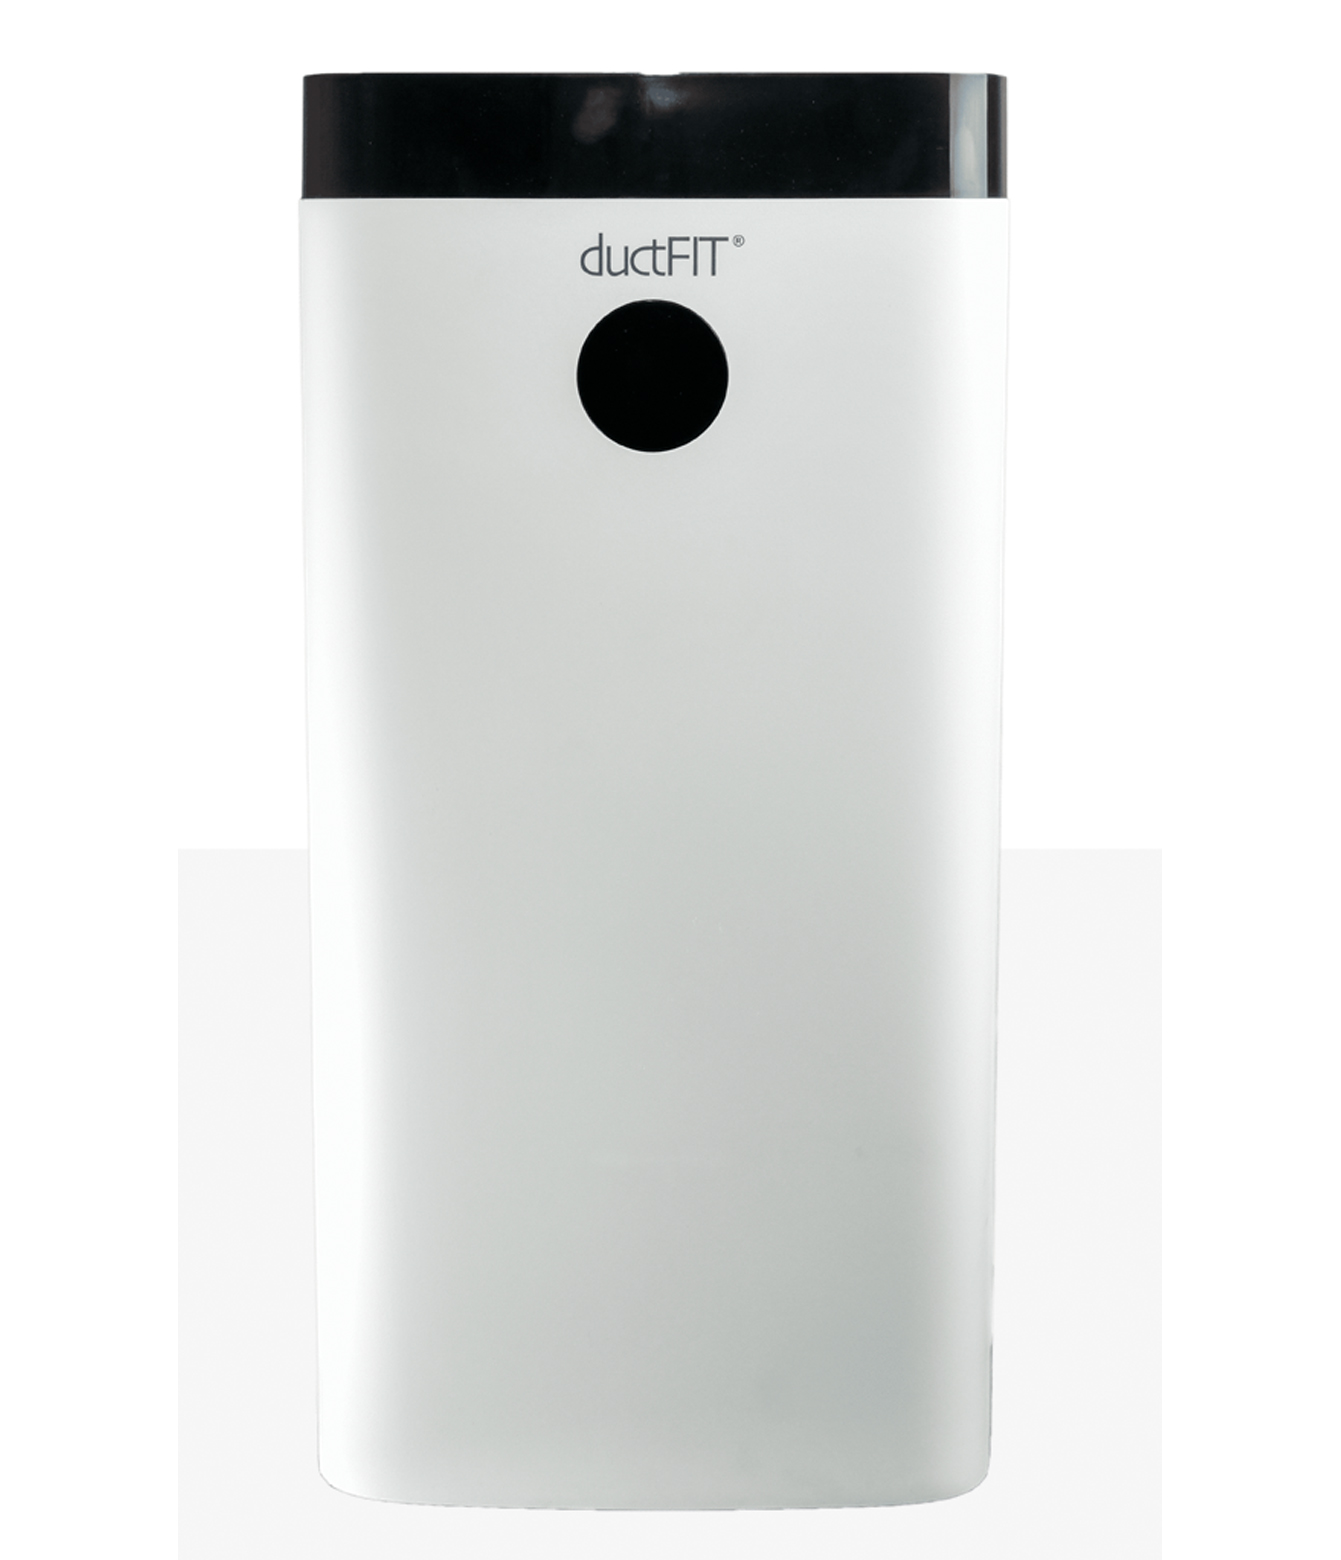 DUCTFIT®| MOBILE